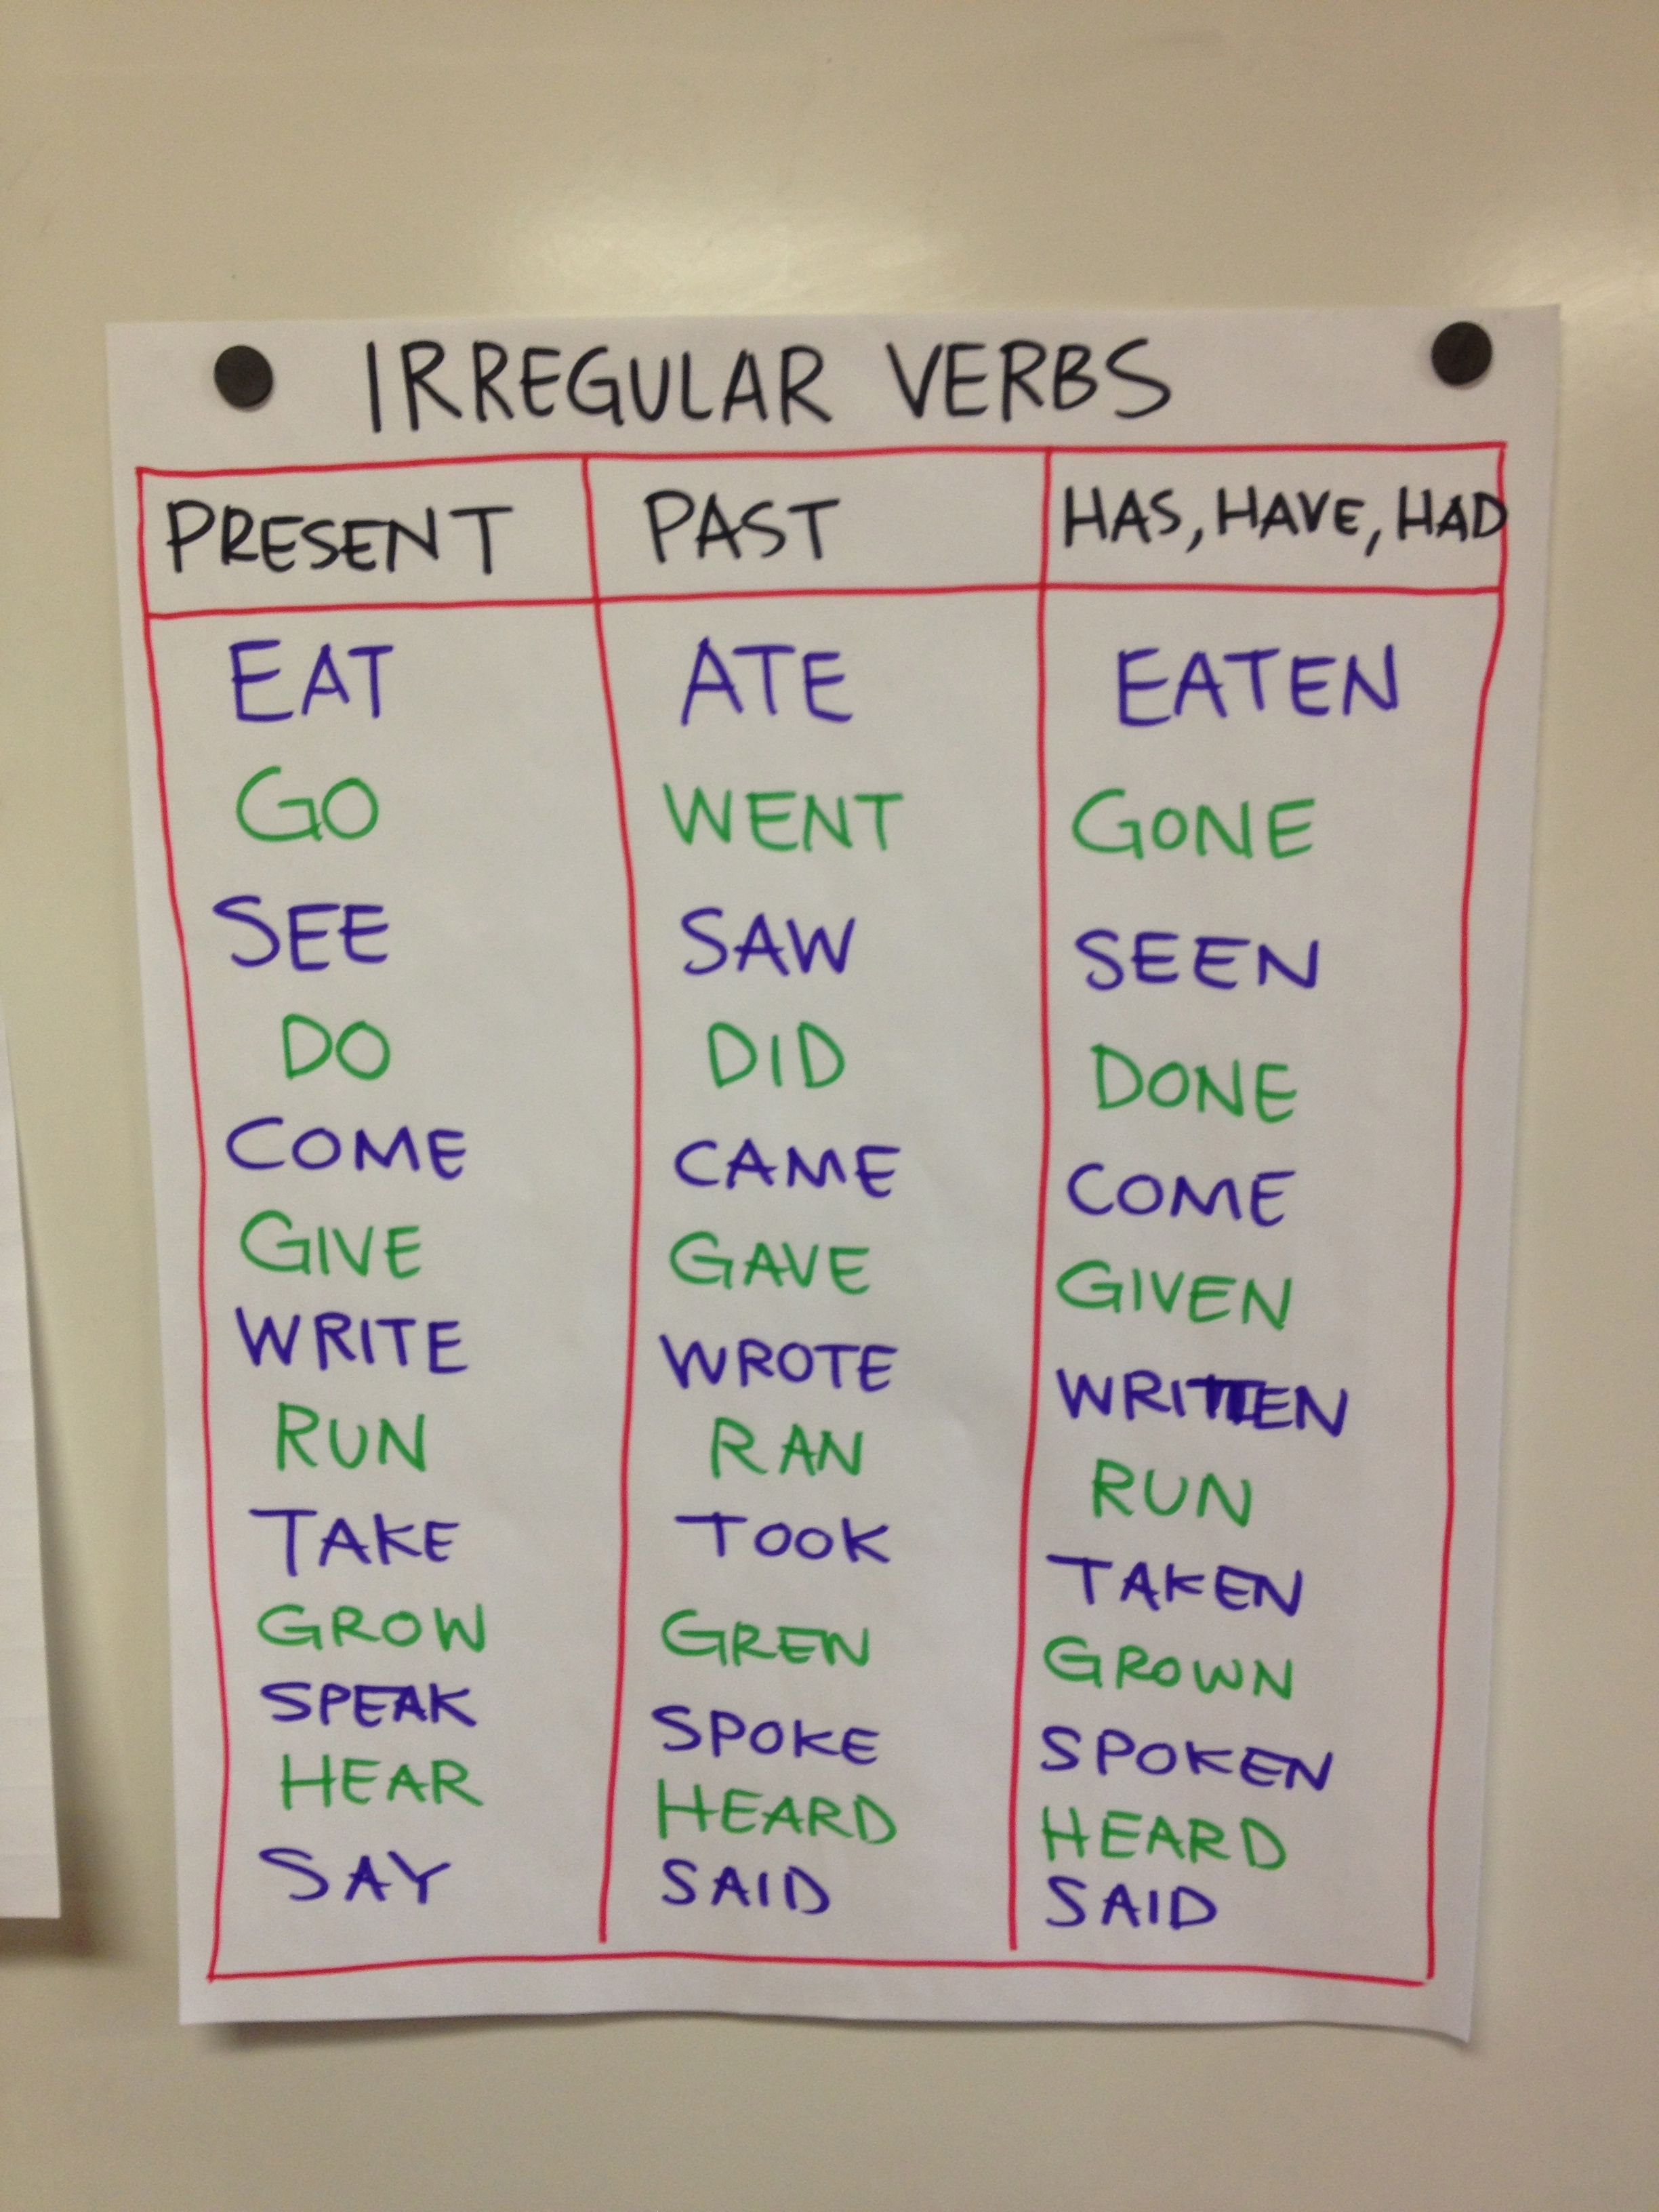 Some Irregular Verbs